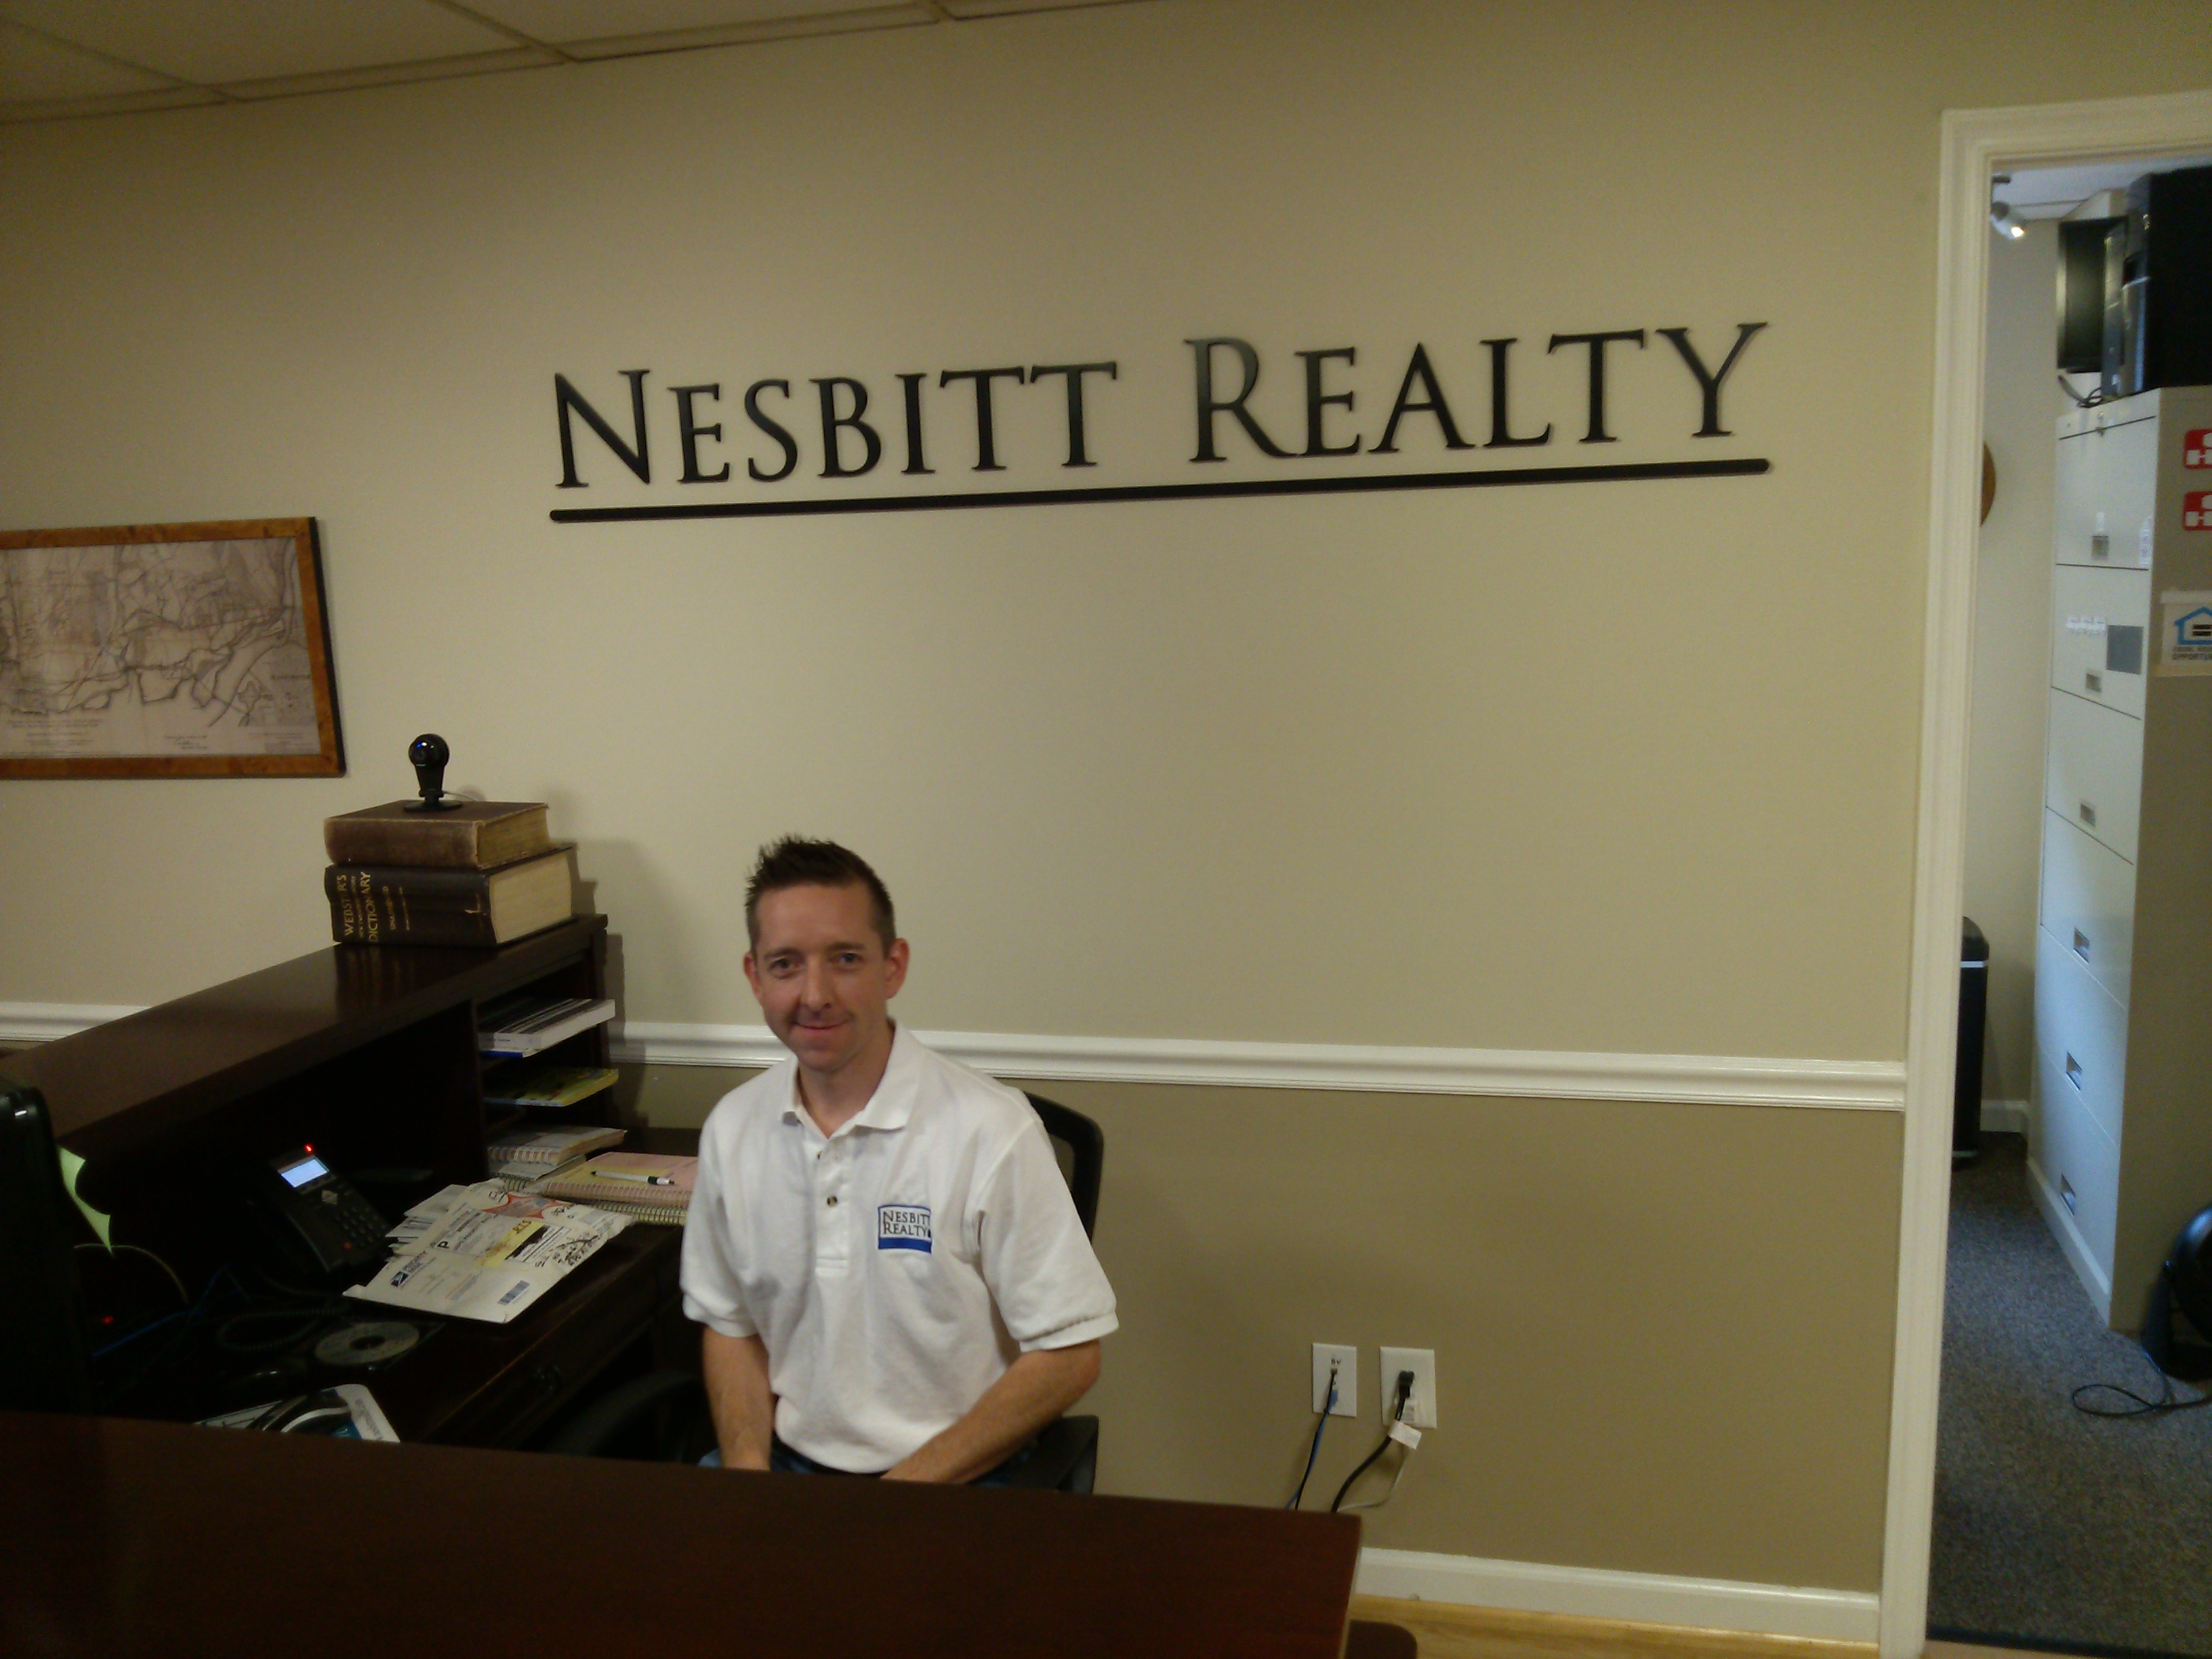 Who uses Nesbitt Realty property management services?